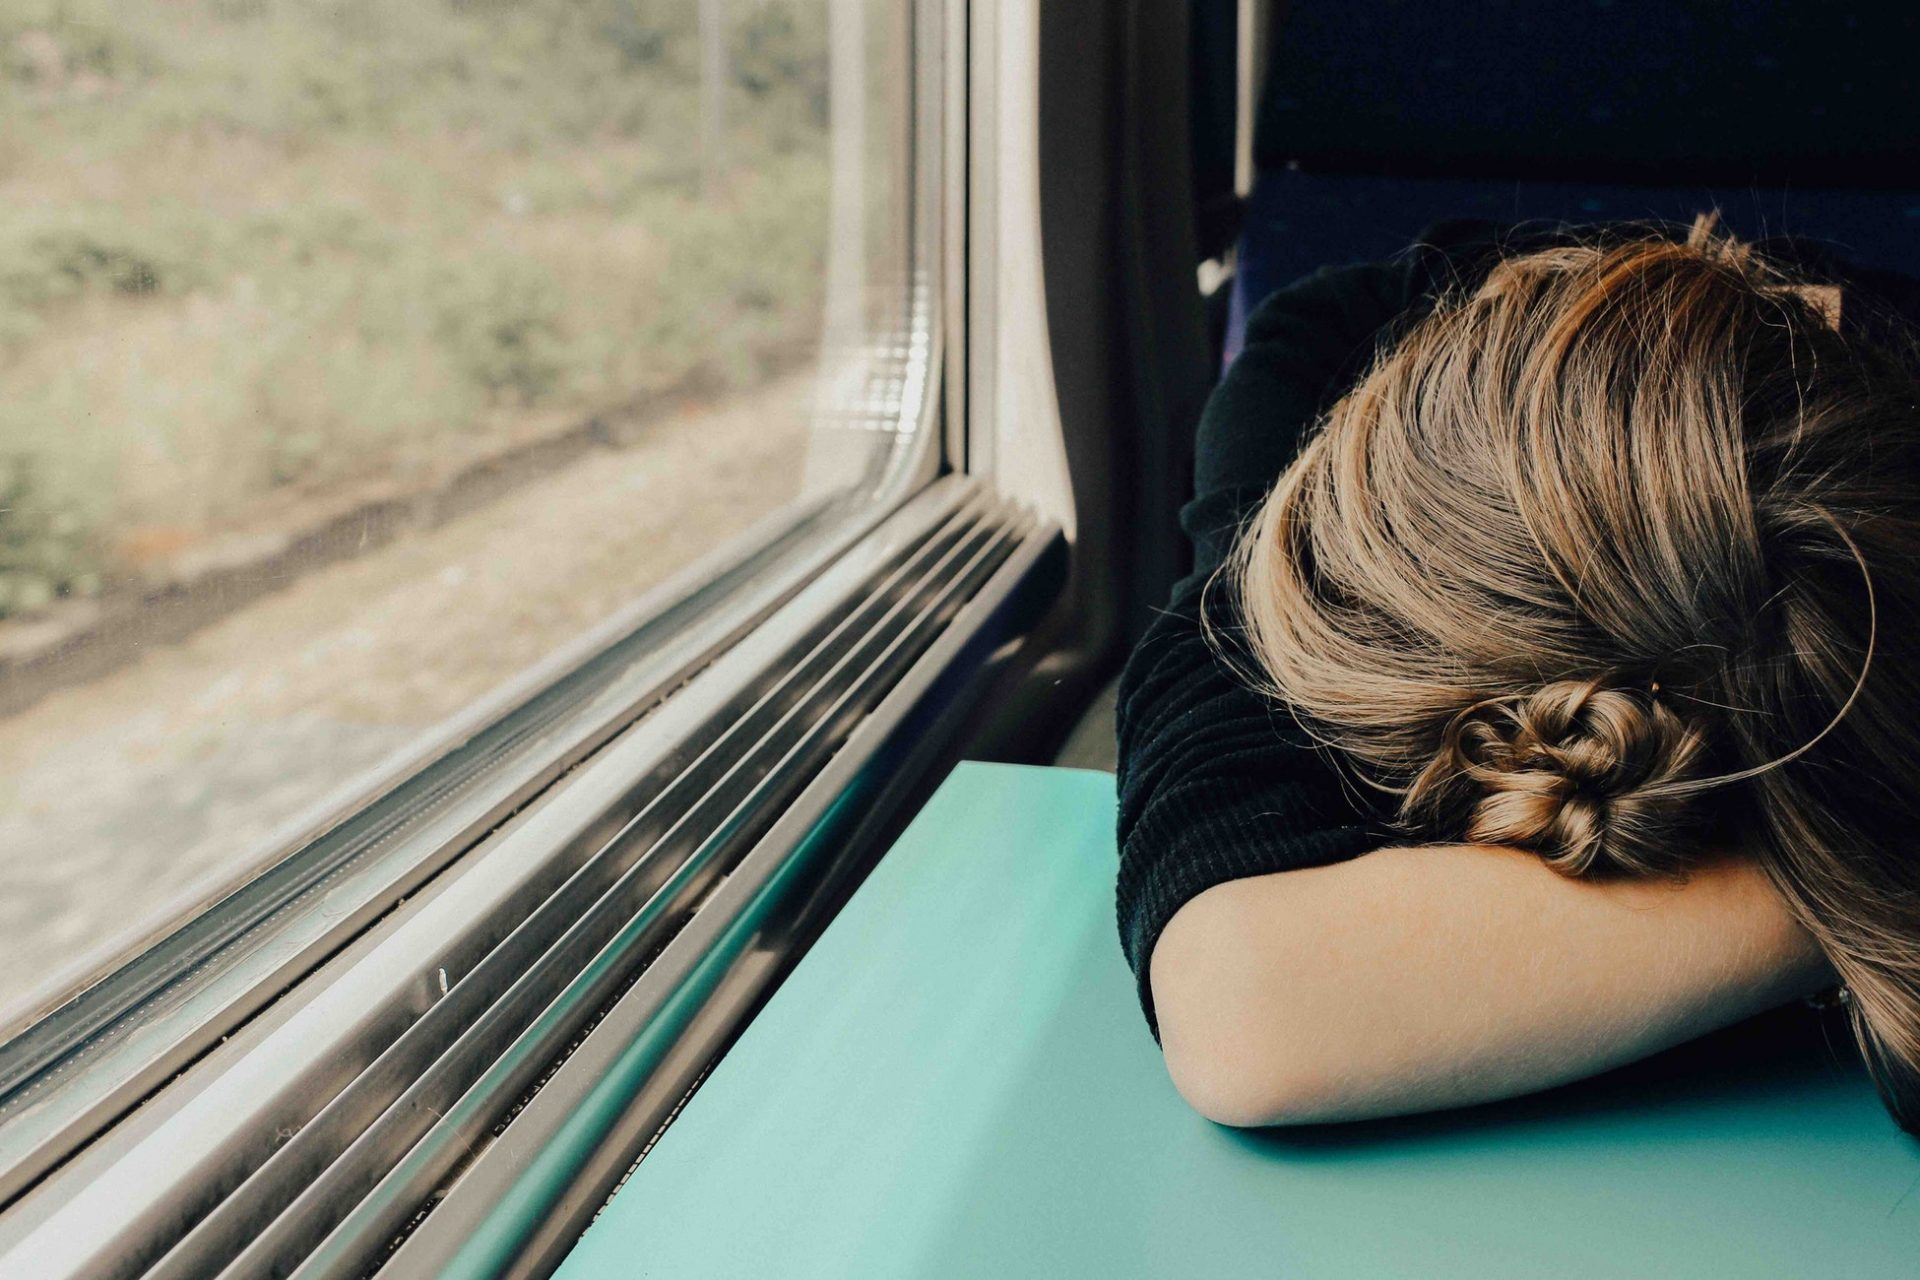 Image of female commuter asleep on train resting her head on the table